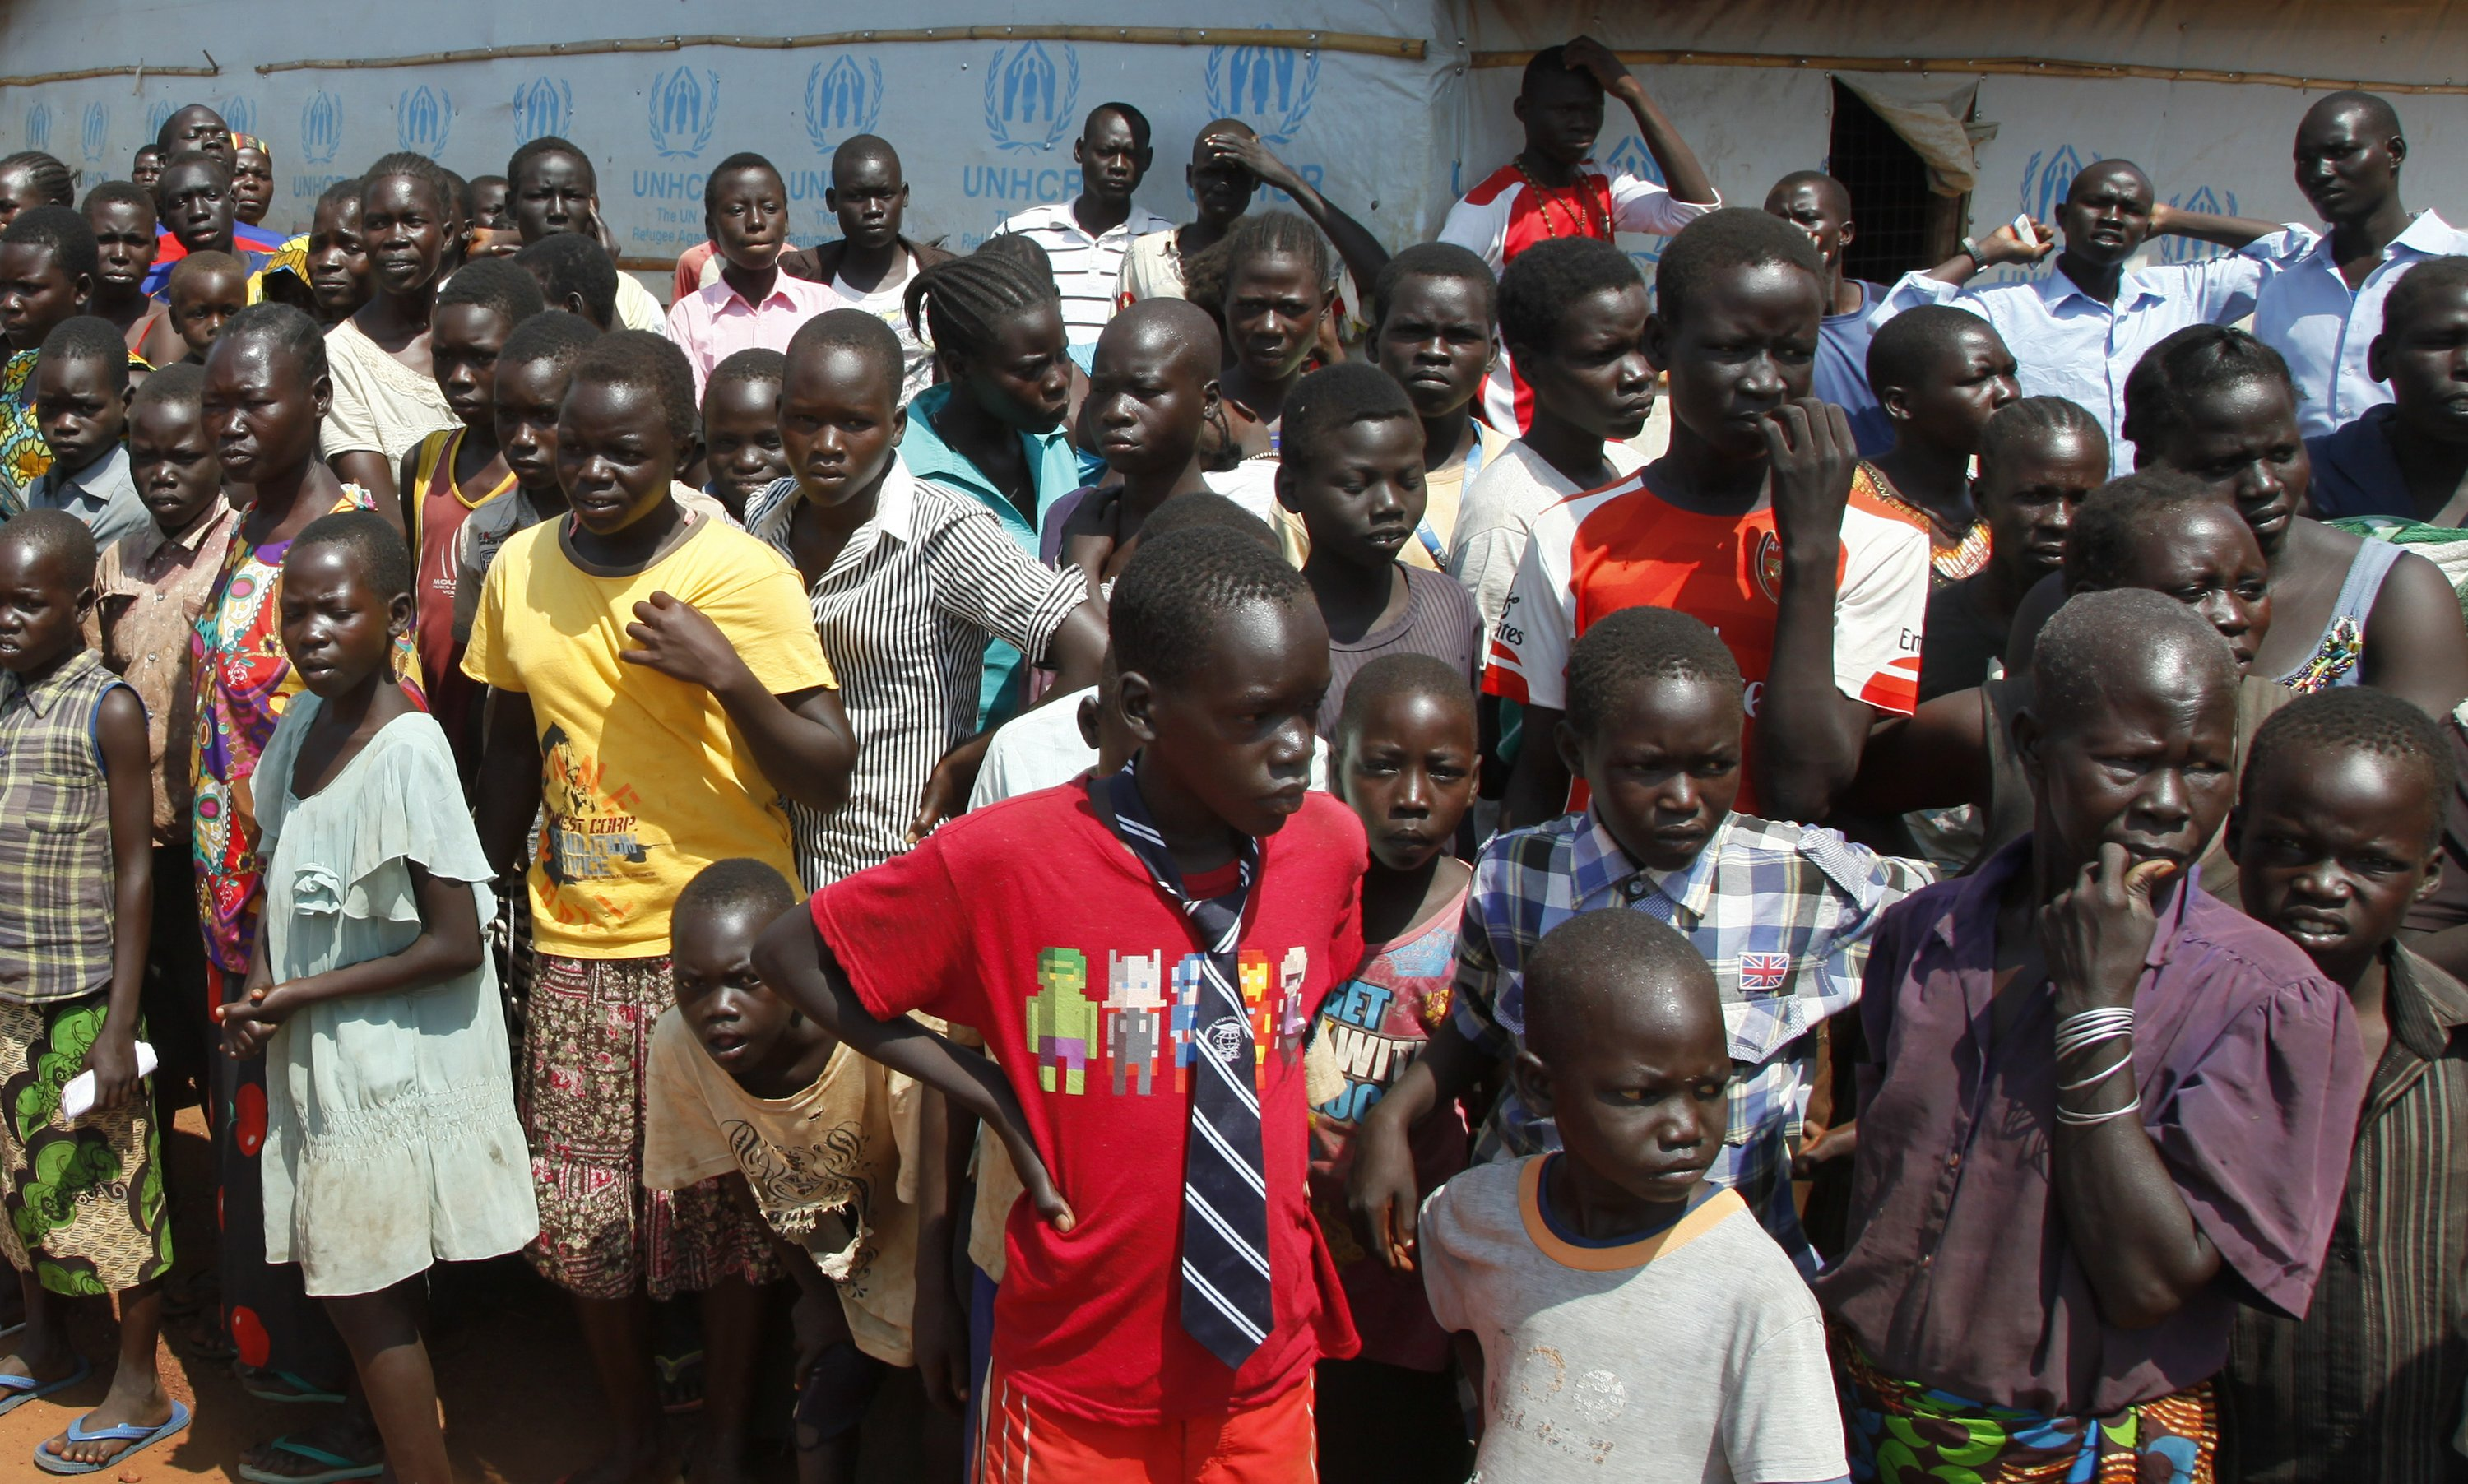 Uganda at 'breaking point' as South Sudan refugees pour in